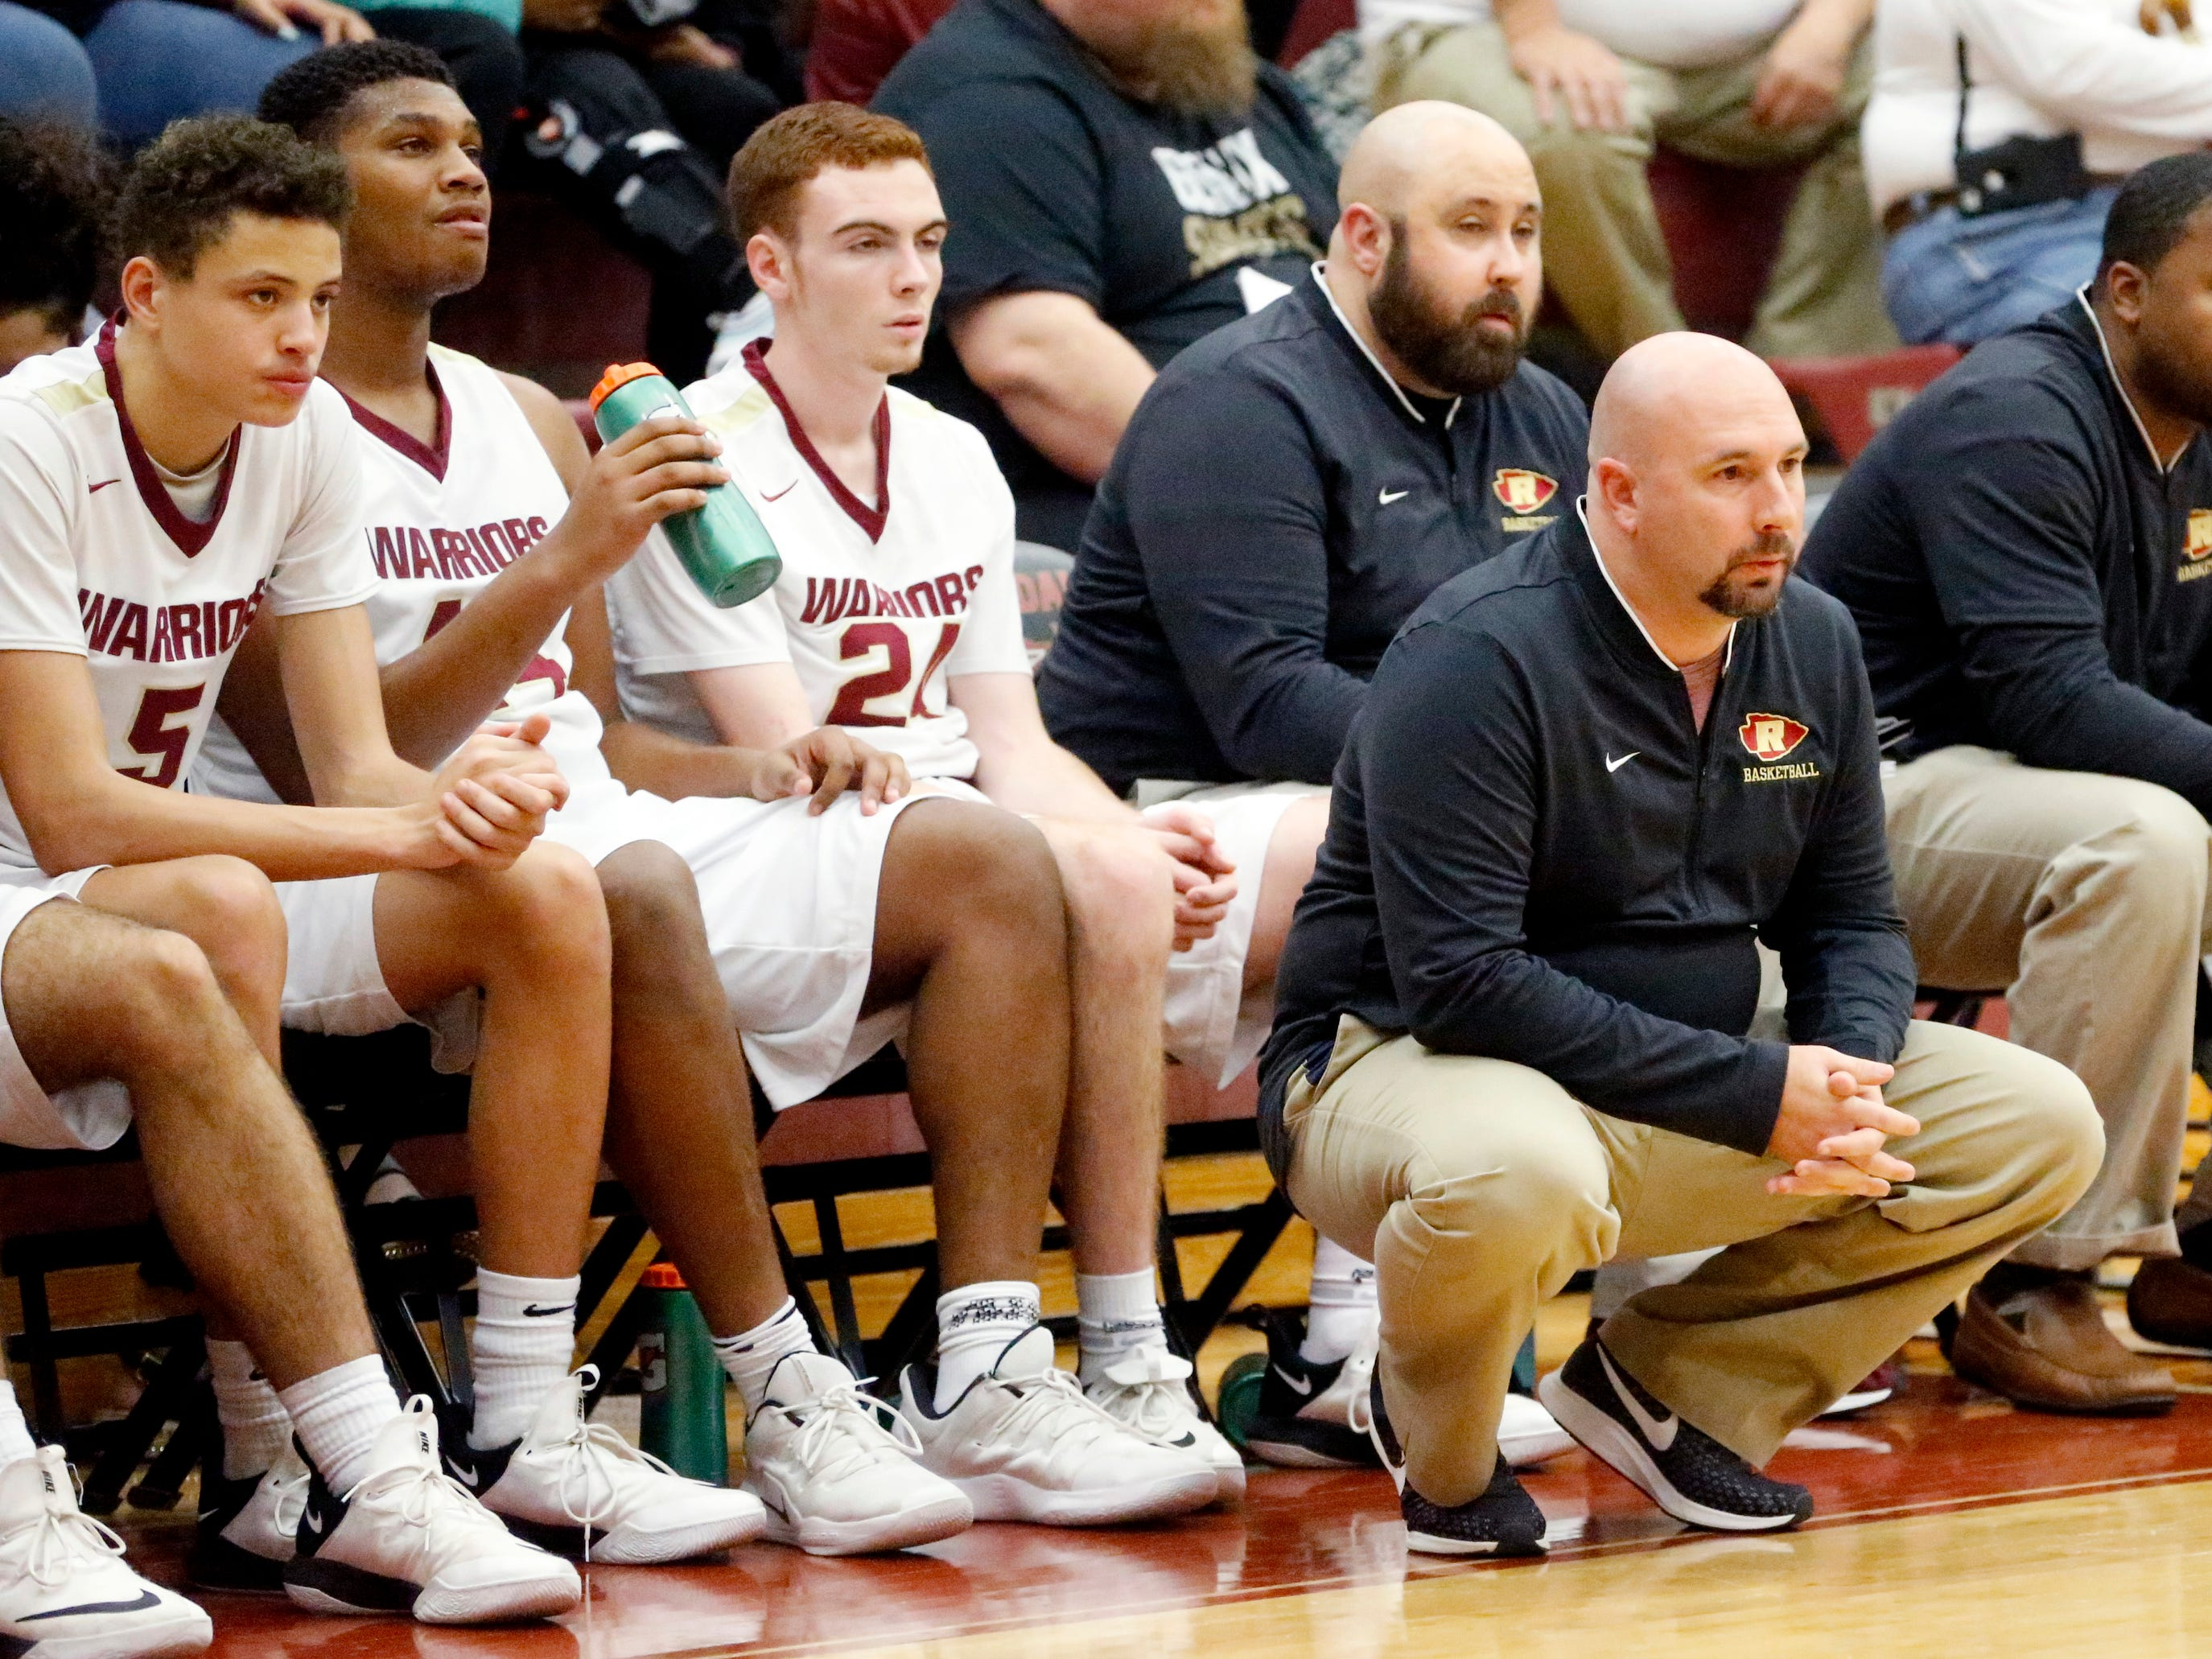 Riverdale's head coach Michael Voss on the sidelines during the game against Blackman on Tuesday Jan. 8, 2019.